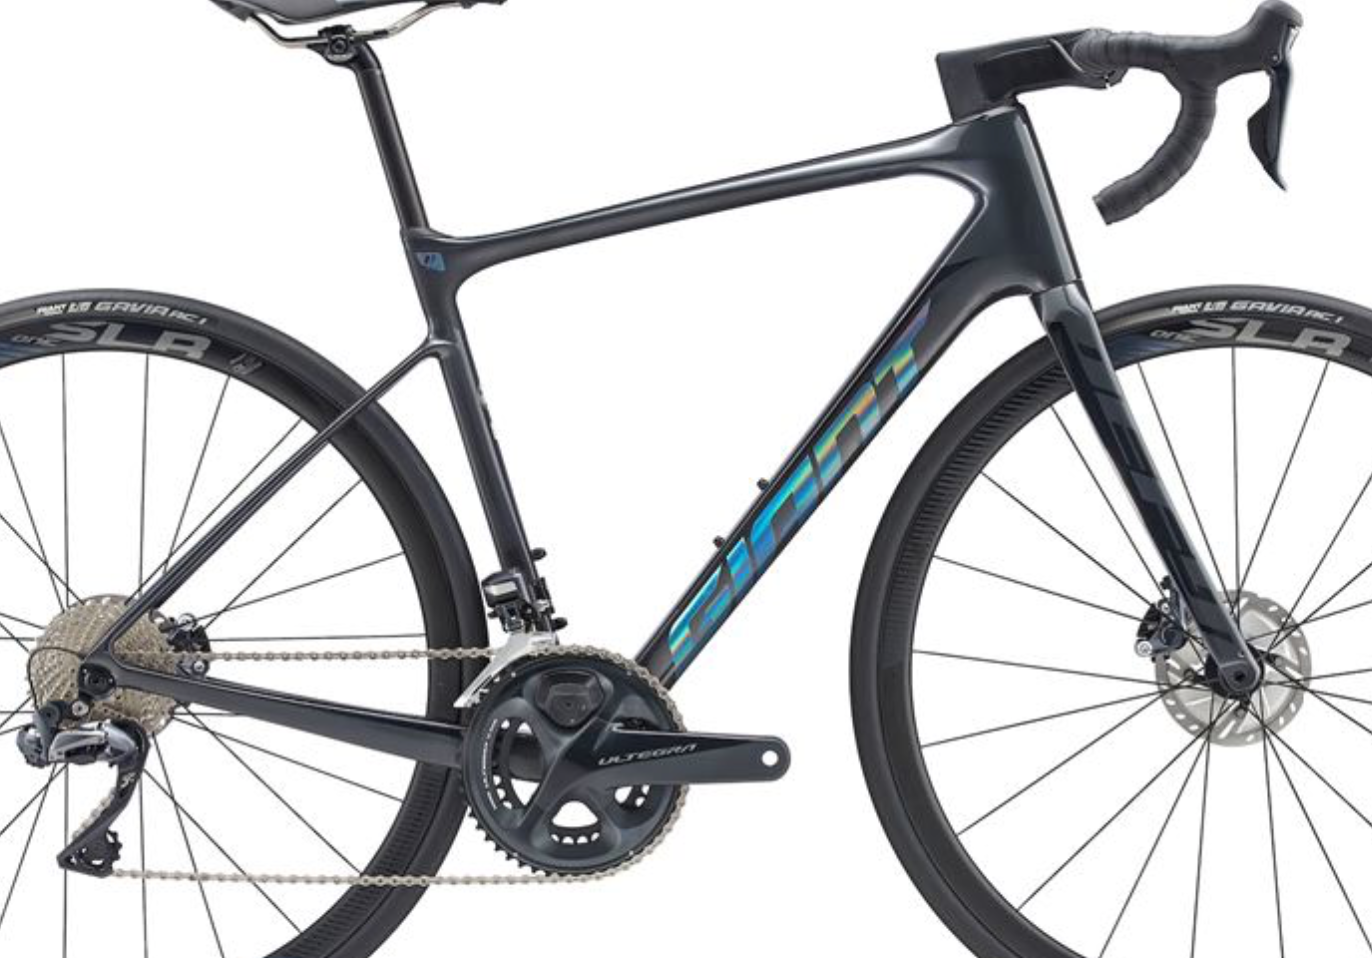 2019 DEFY LAUNCHED